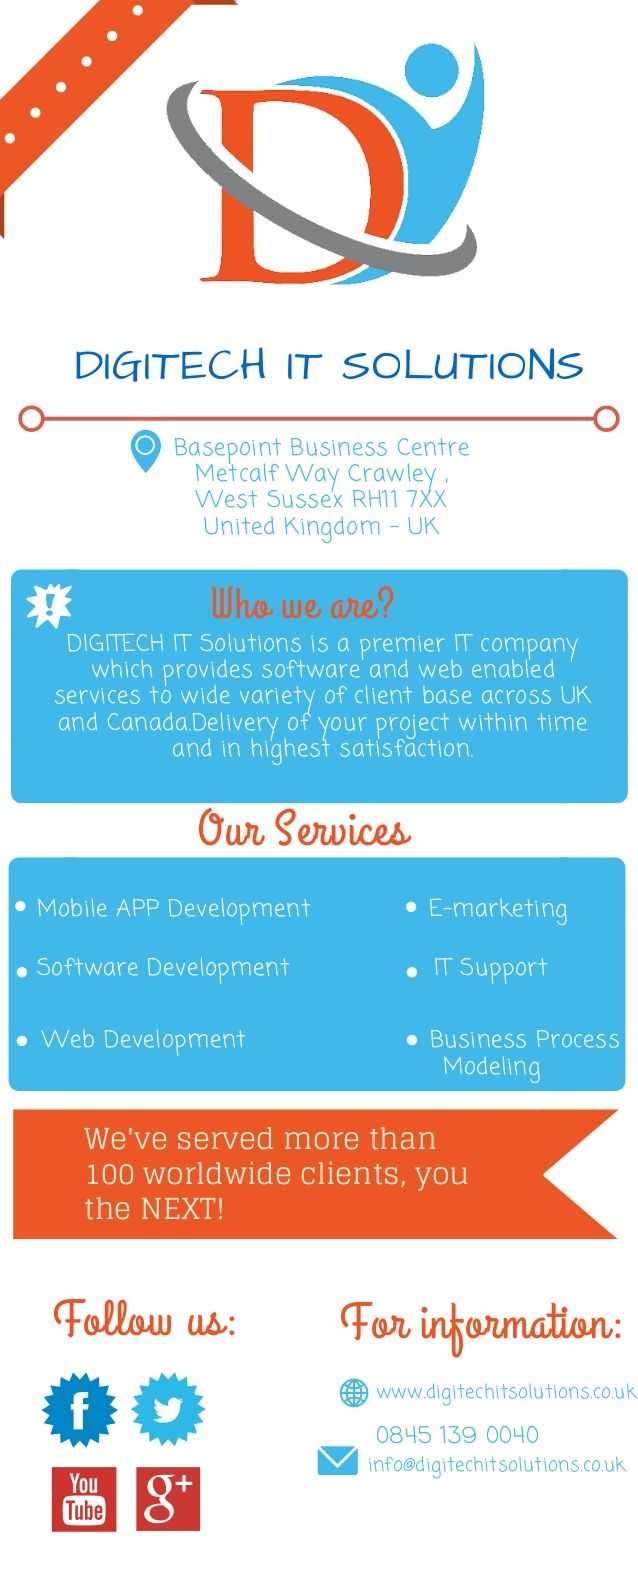 A forward looking company manged by professionals in their respective fields, we strives to provide tailor made cutting edge solutions, through out of box thinking, for our valued clients.Our commitment is to provide very contemporary solutions to web site development. So if you are looking for a dedicated, thorough, and multi-disciplined team of solution providers give us a call.